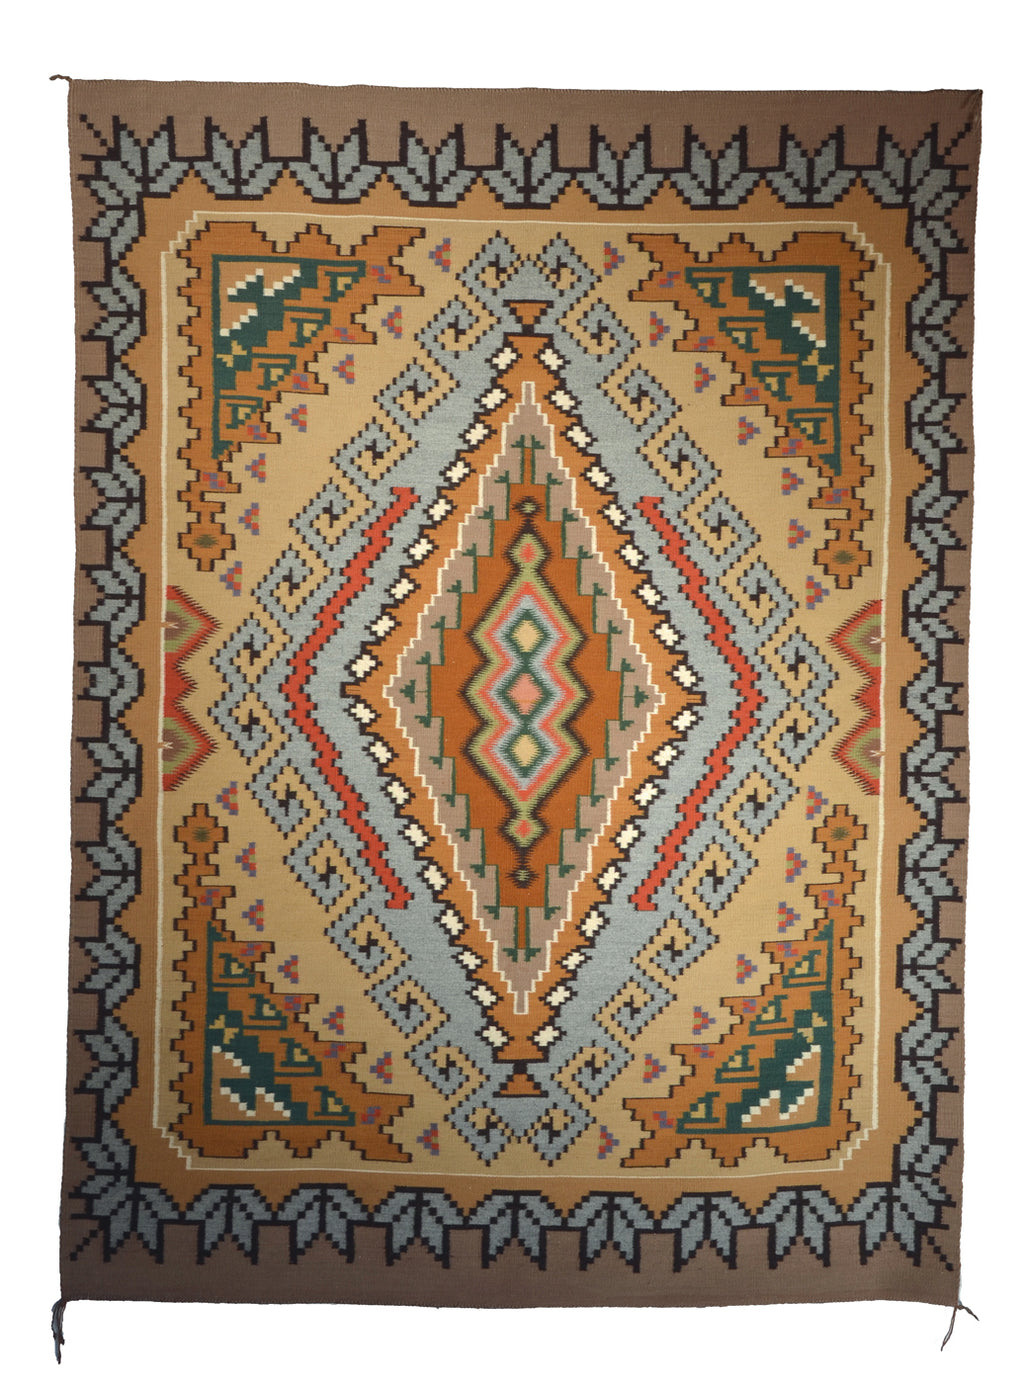 Burntwater Navajo rug from the 1980s